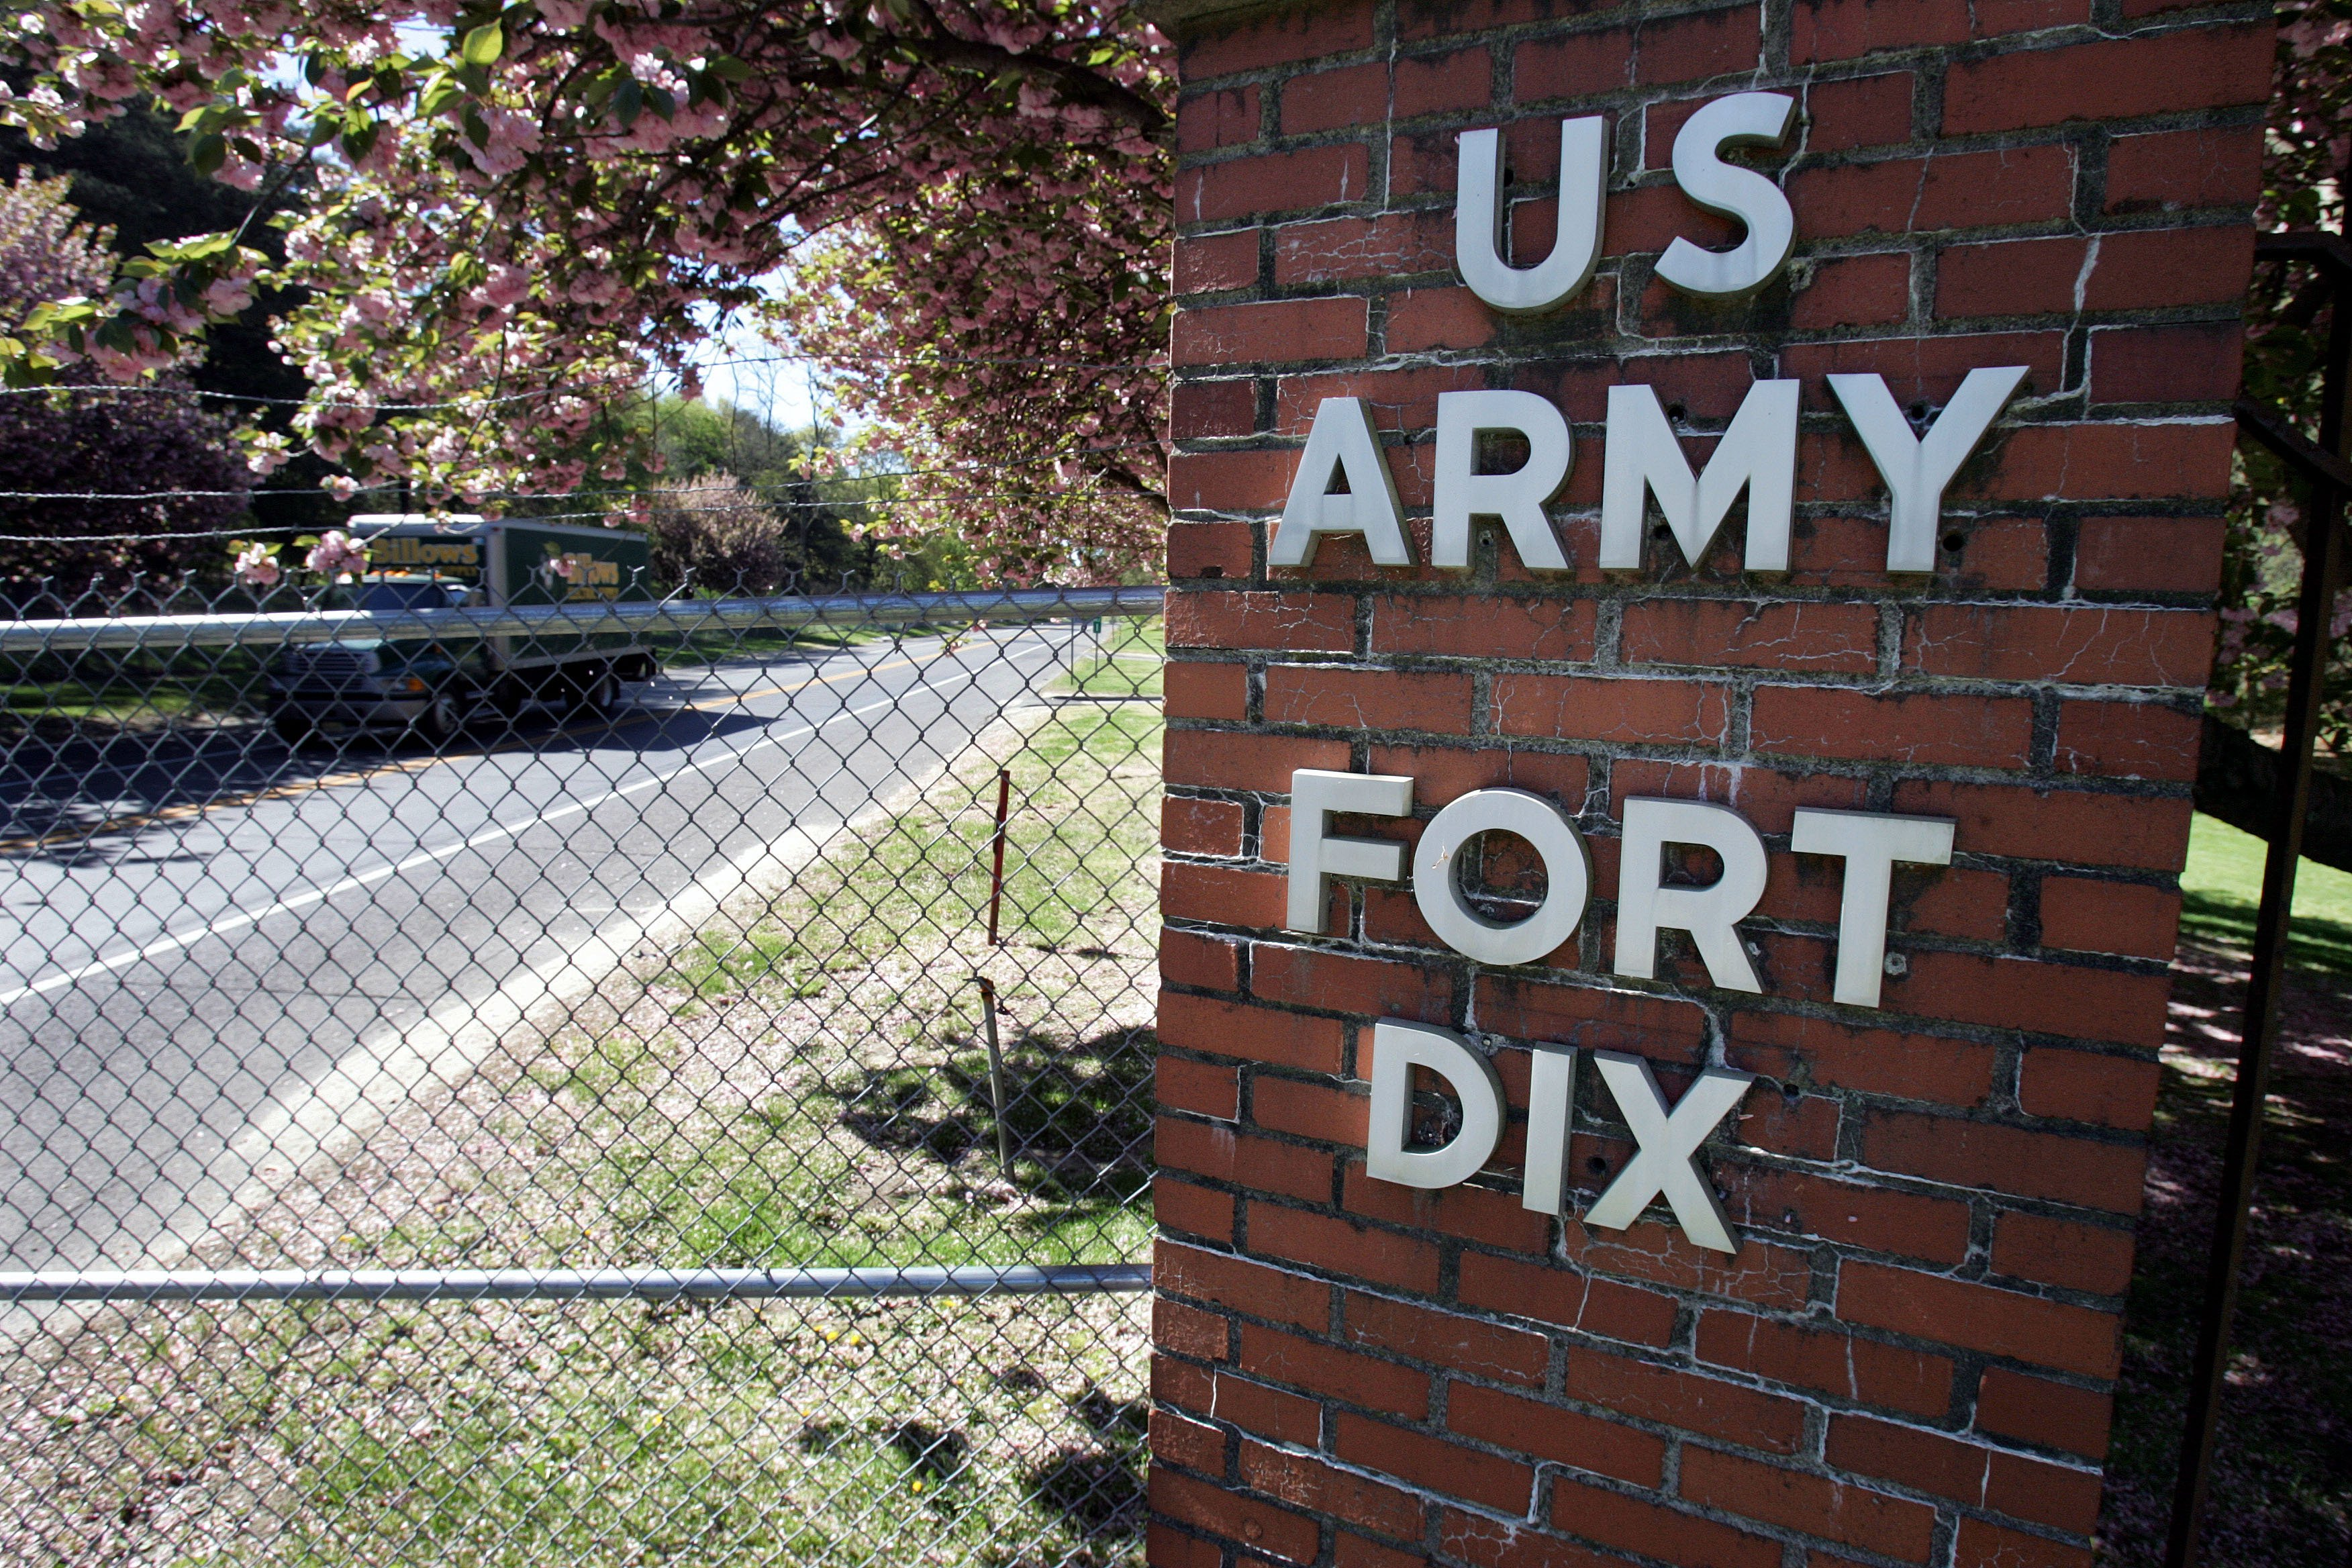 FILE - A truck drives through a gate at the Fort Dix Army Base near Wrightstown, N.J., May 8, 2007.